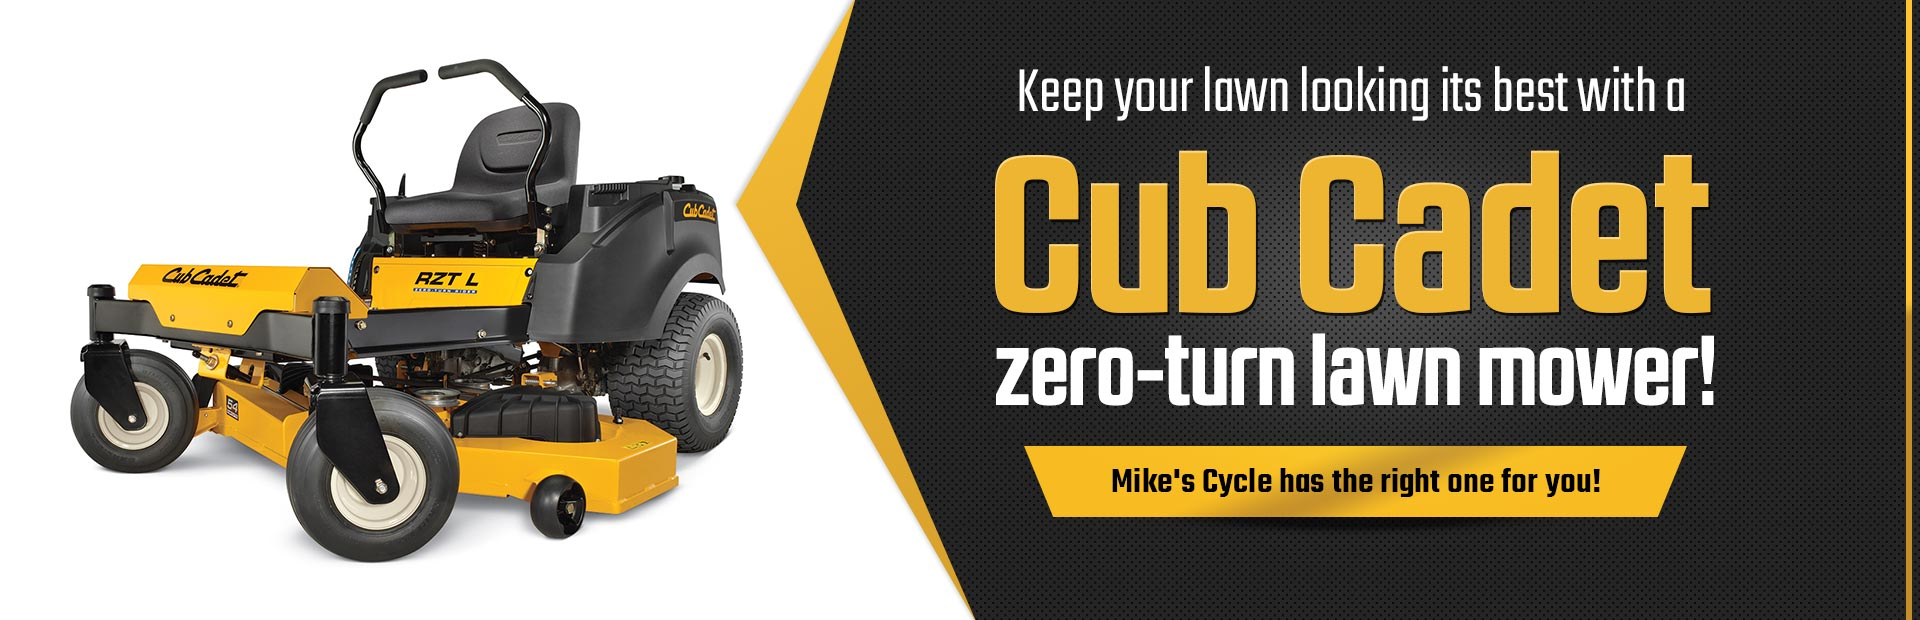 Keep your lawn looking its best with a Cub Cadet zero-turn lawn mower! Mike's Cycle has the right one for you!